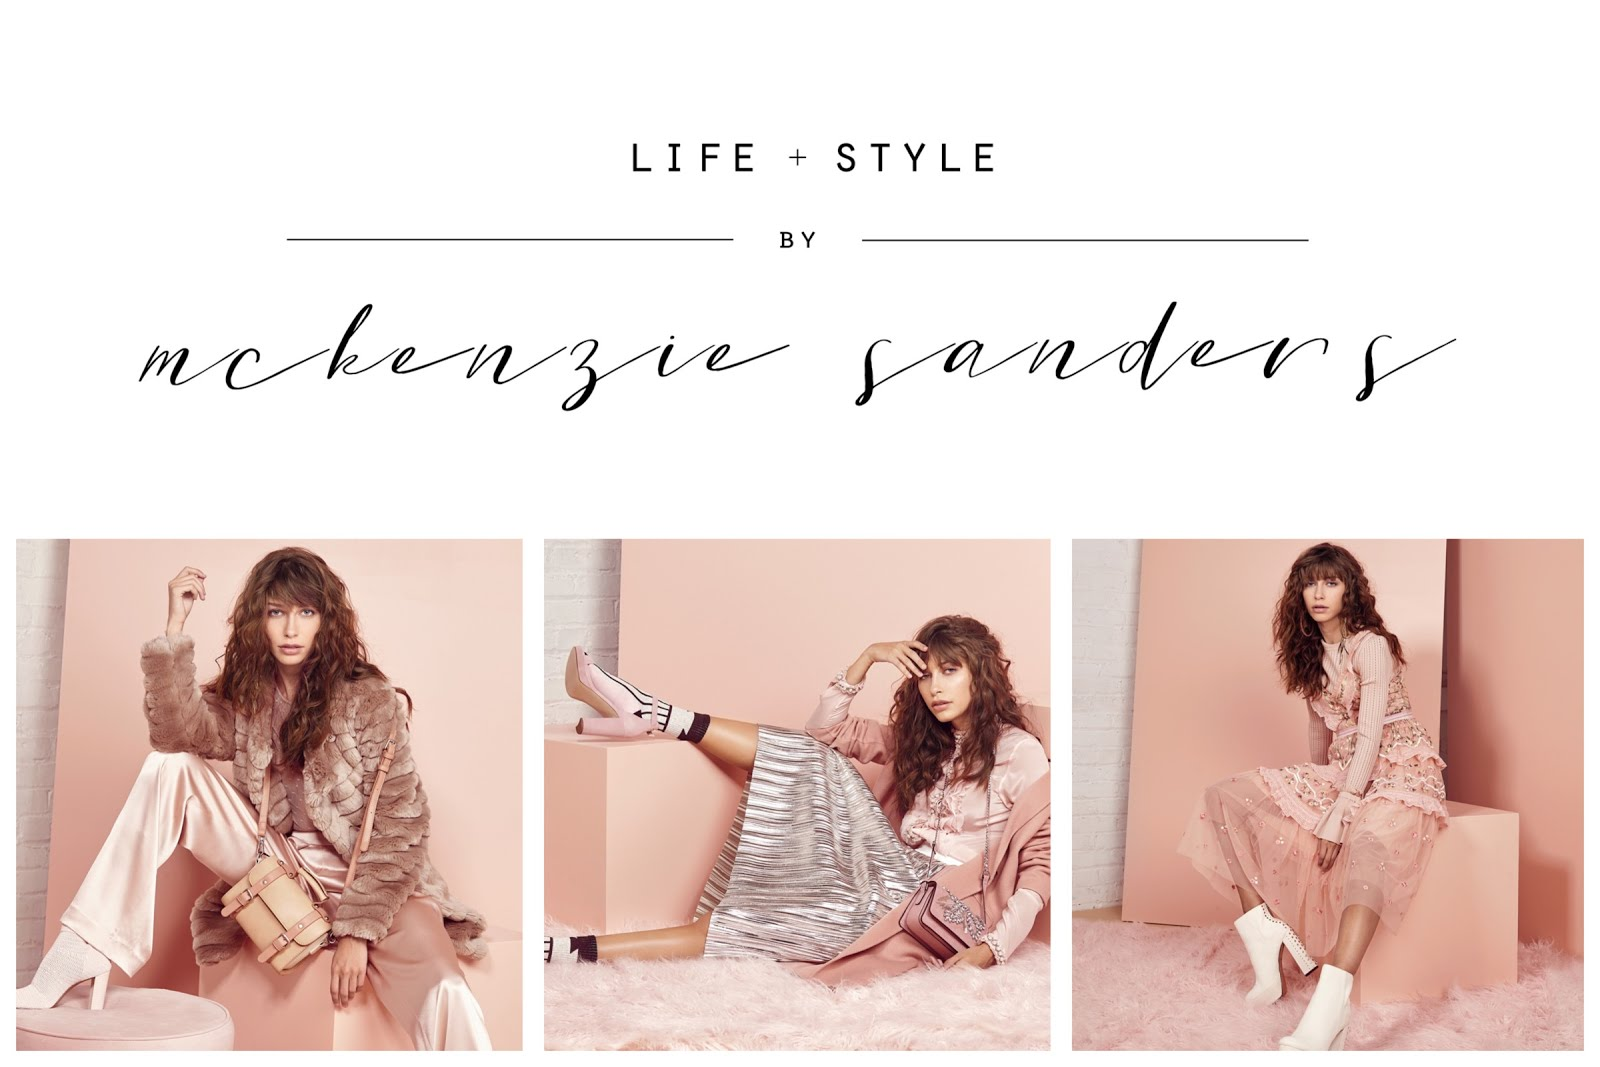 Life and Style by McKenzie Sanders